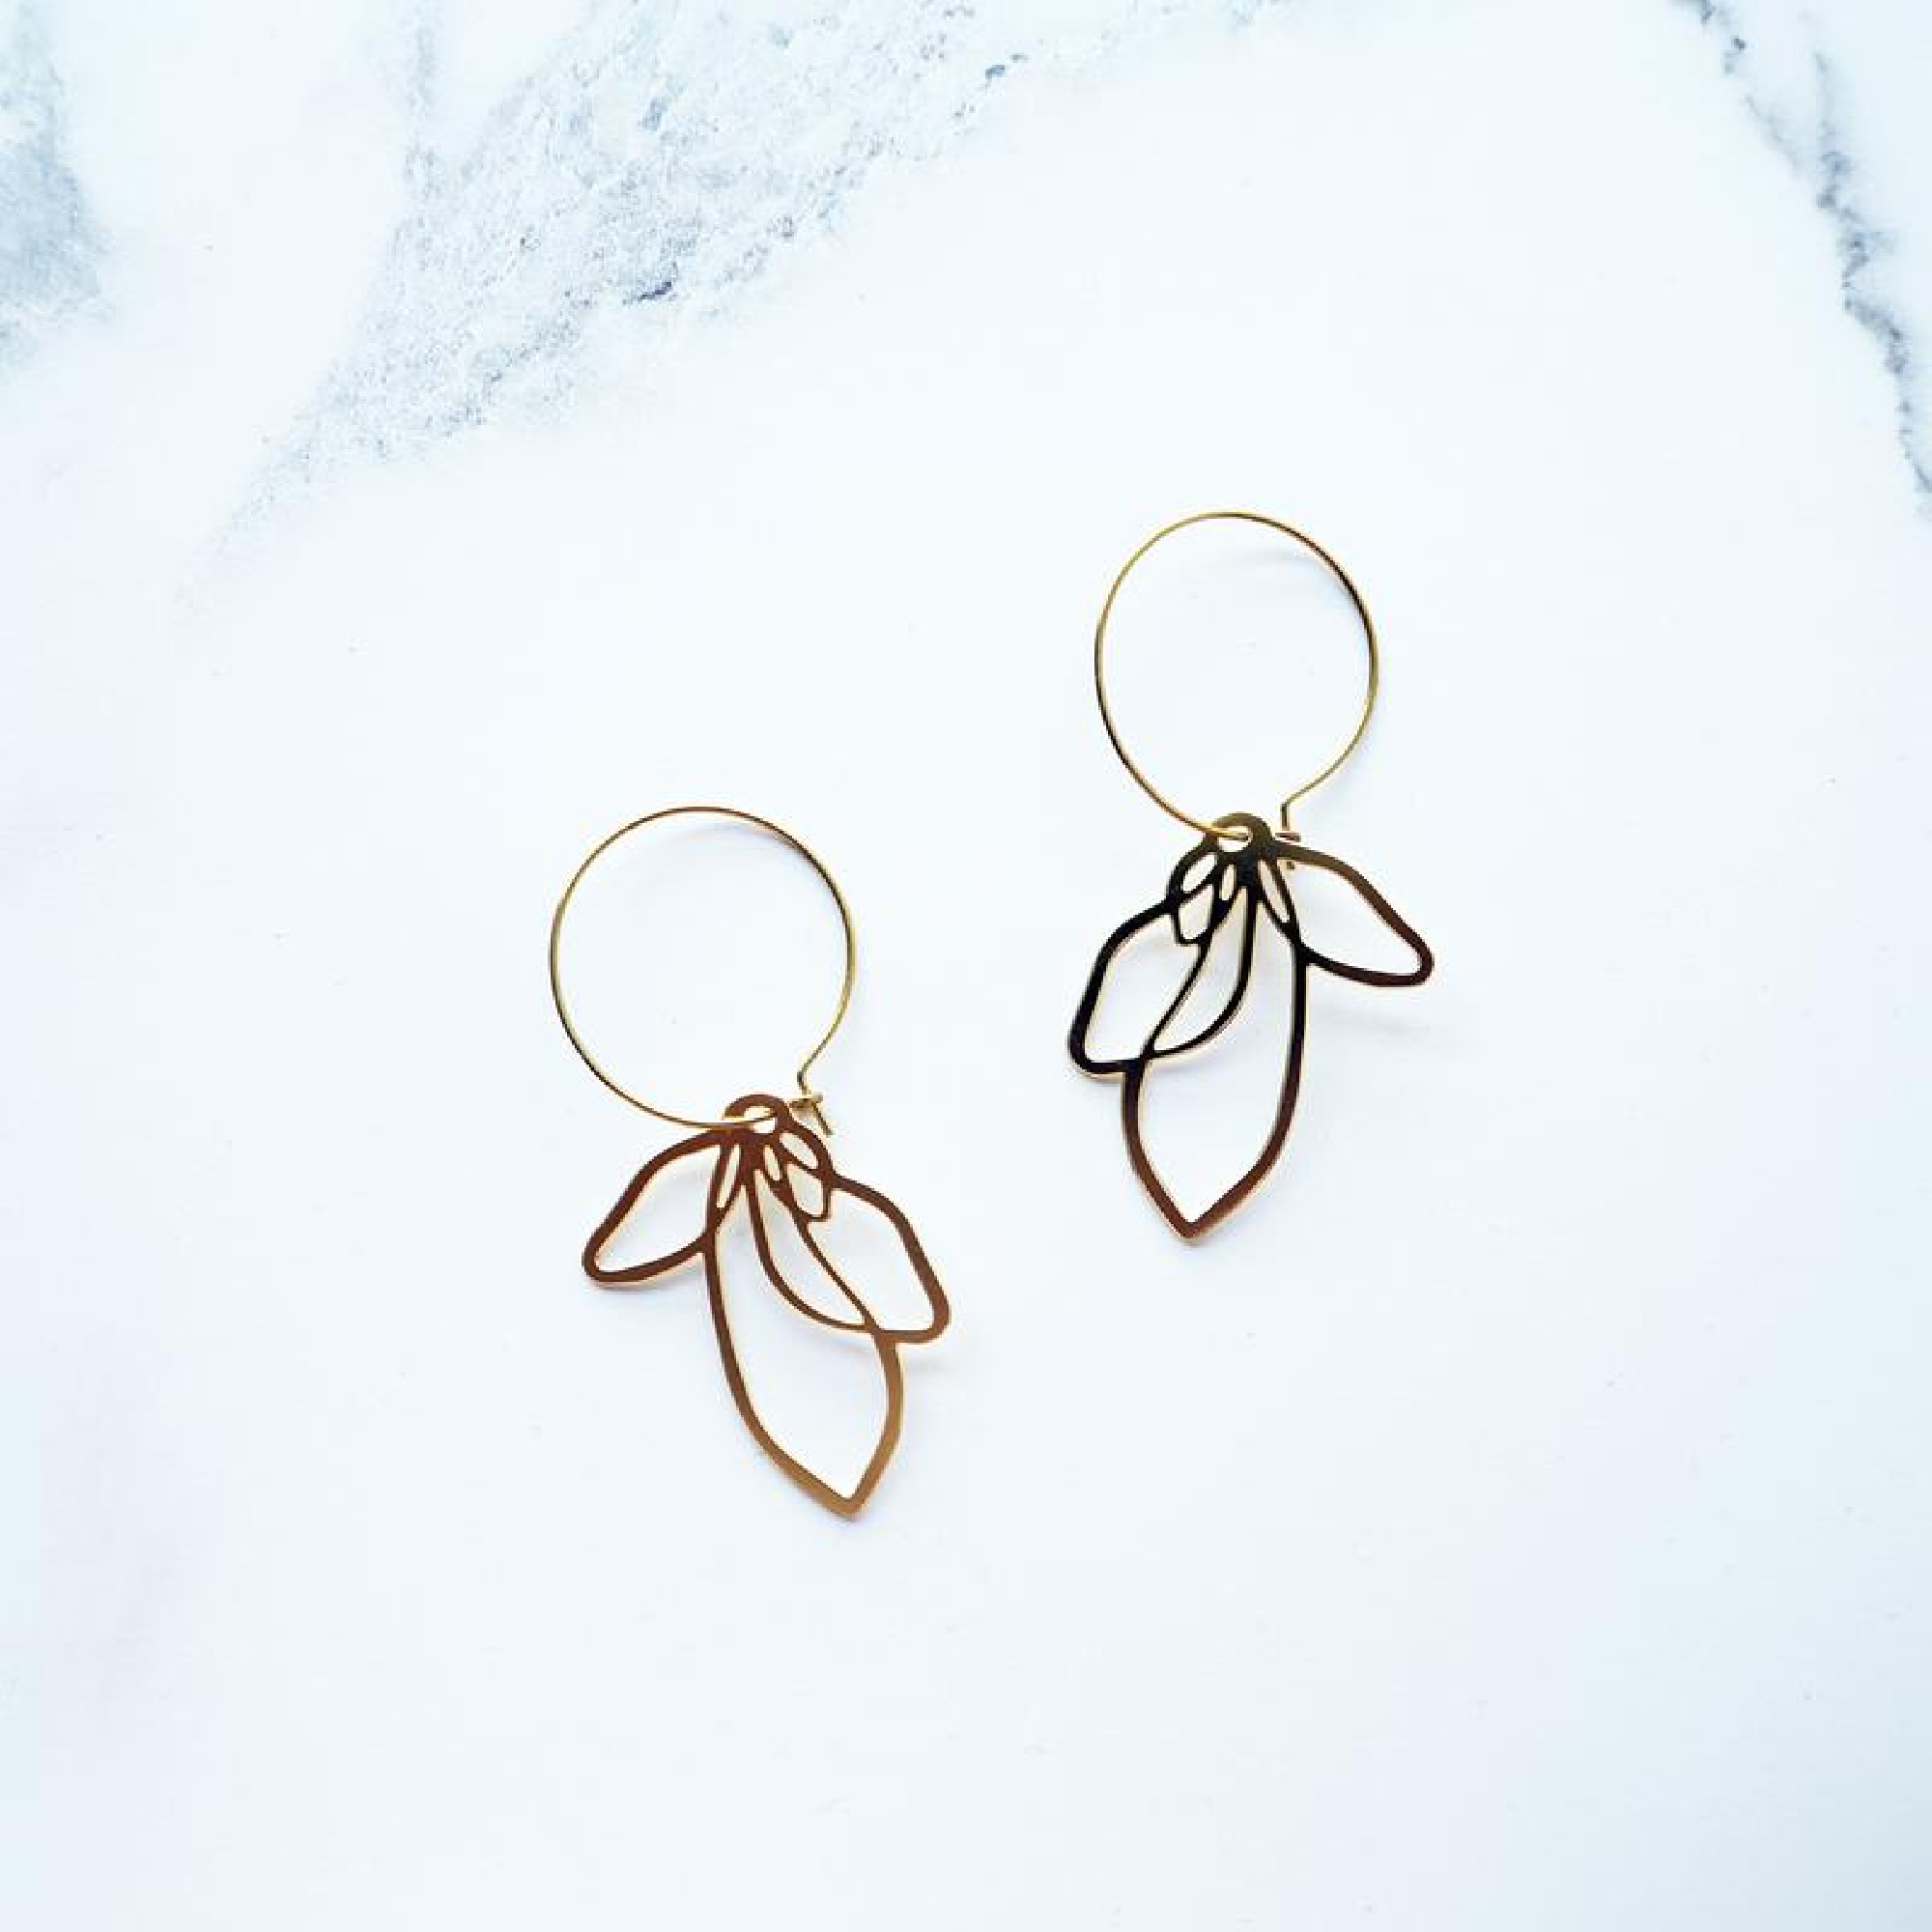 Petal Earrings by Mica Peet